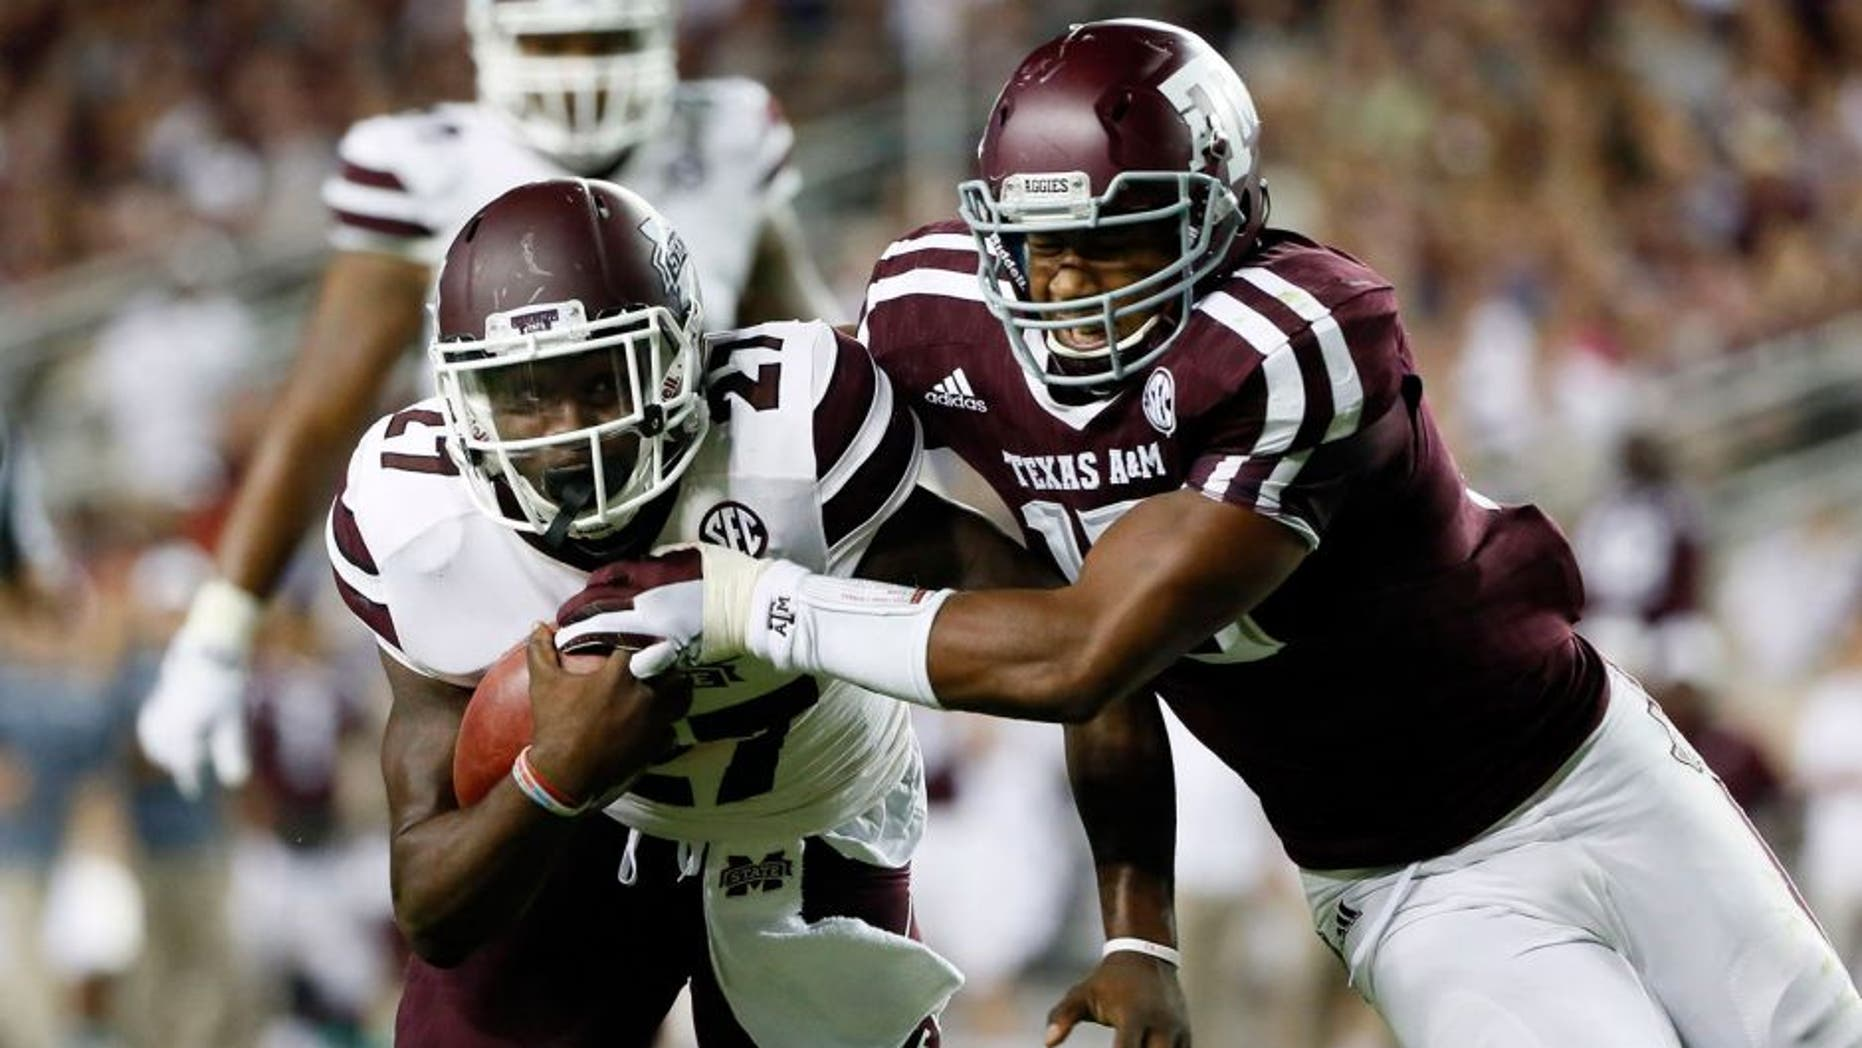 Oct 3, 2015; College Station, TX, USA; Mississippi State Bulldogs running back Aeris Williams (27) carries the ball as Texas A&M Aggies defensive lineman Myles Garrett (right) defends during the second half at Kyle Field. Texas A&M won 30-17. Mandatory Credit: Soobum Im-USA TODAY Sports